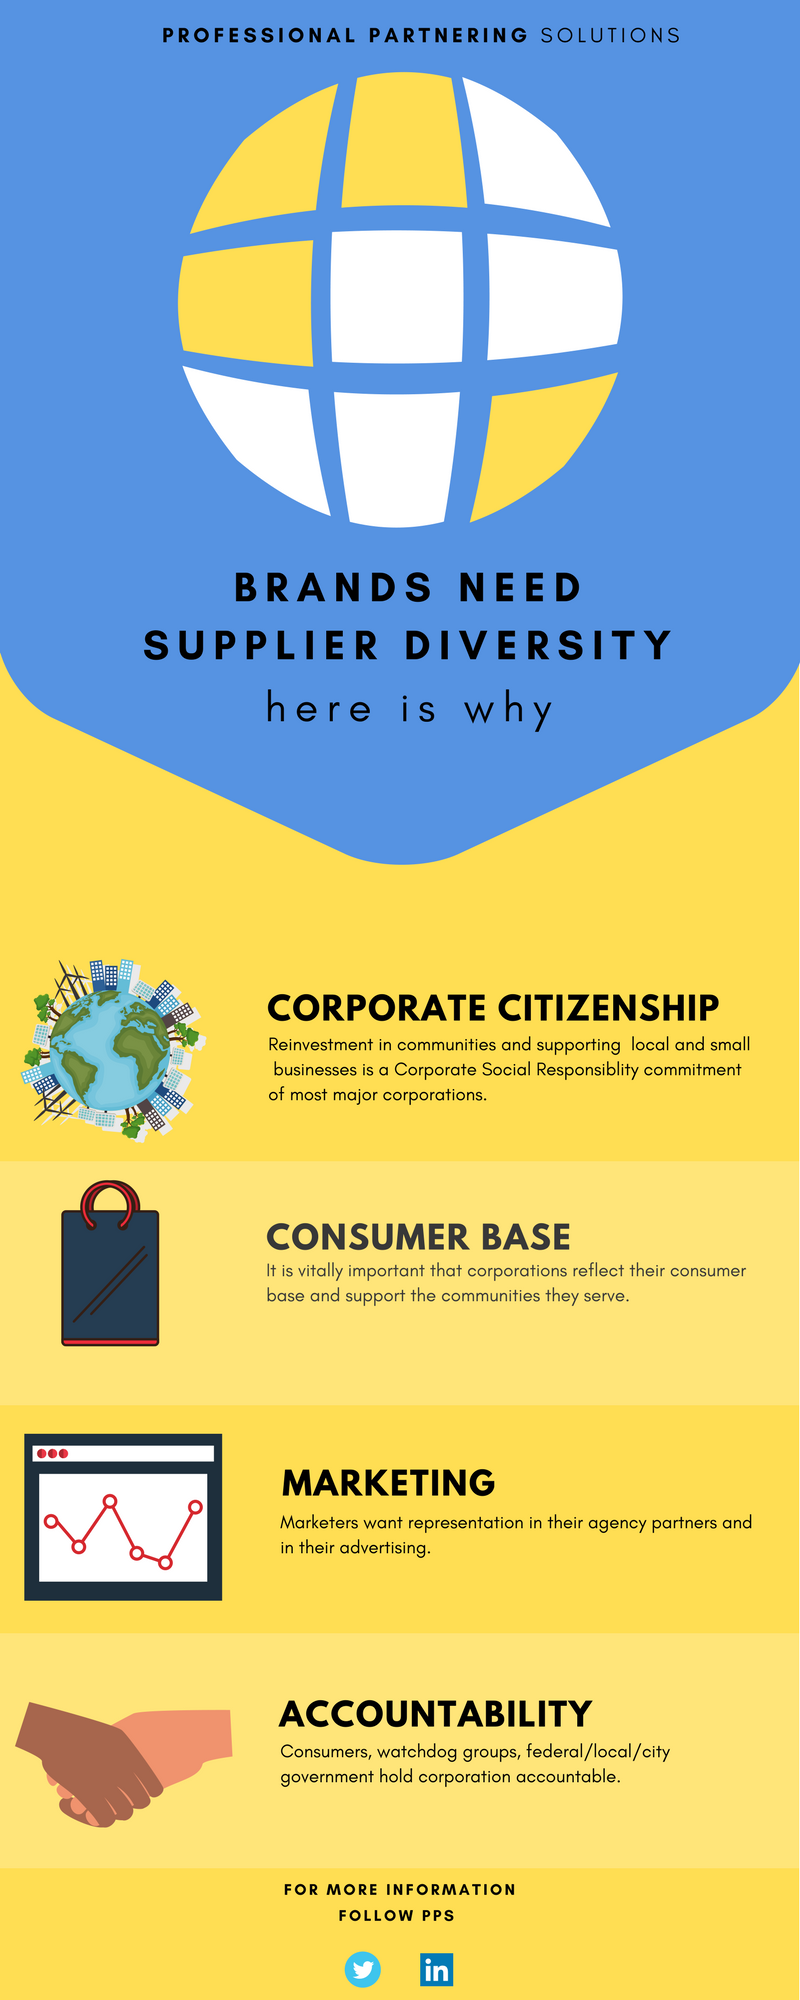 Why Supplier Diversity Matters